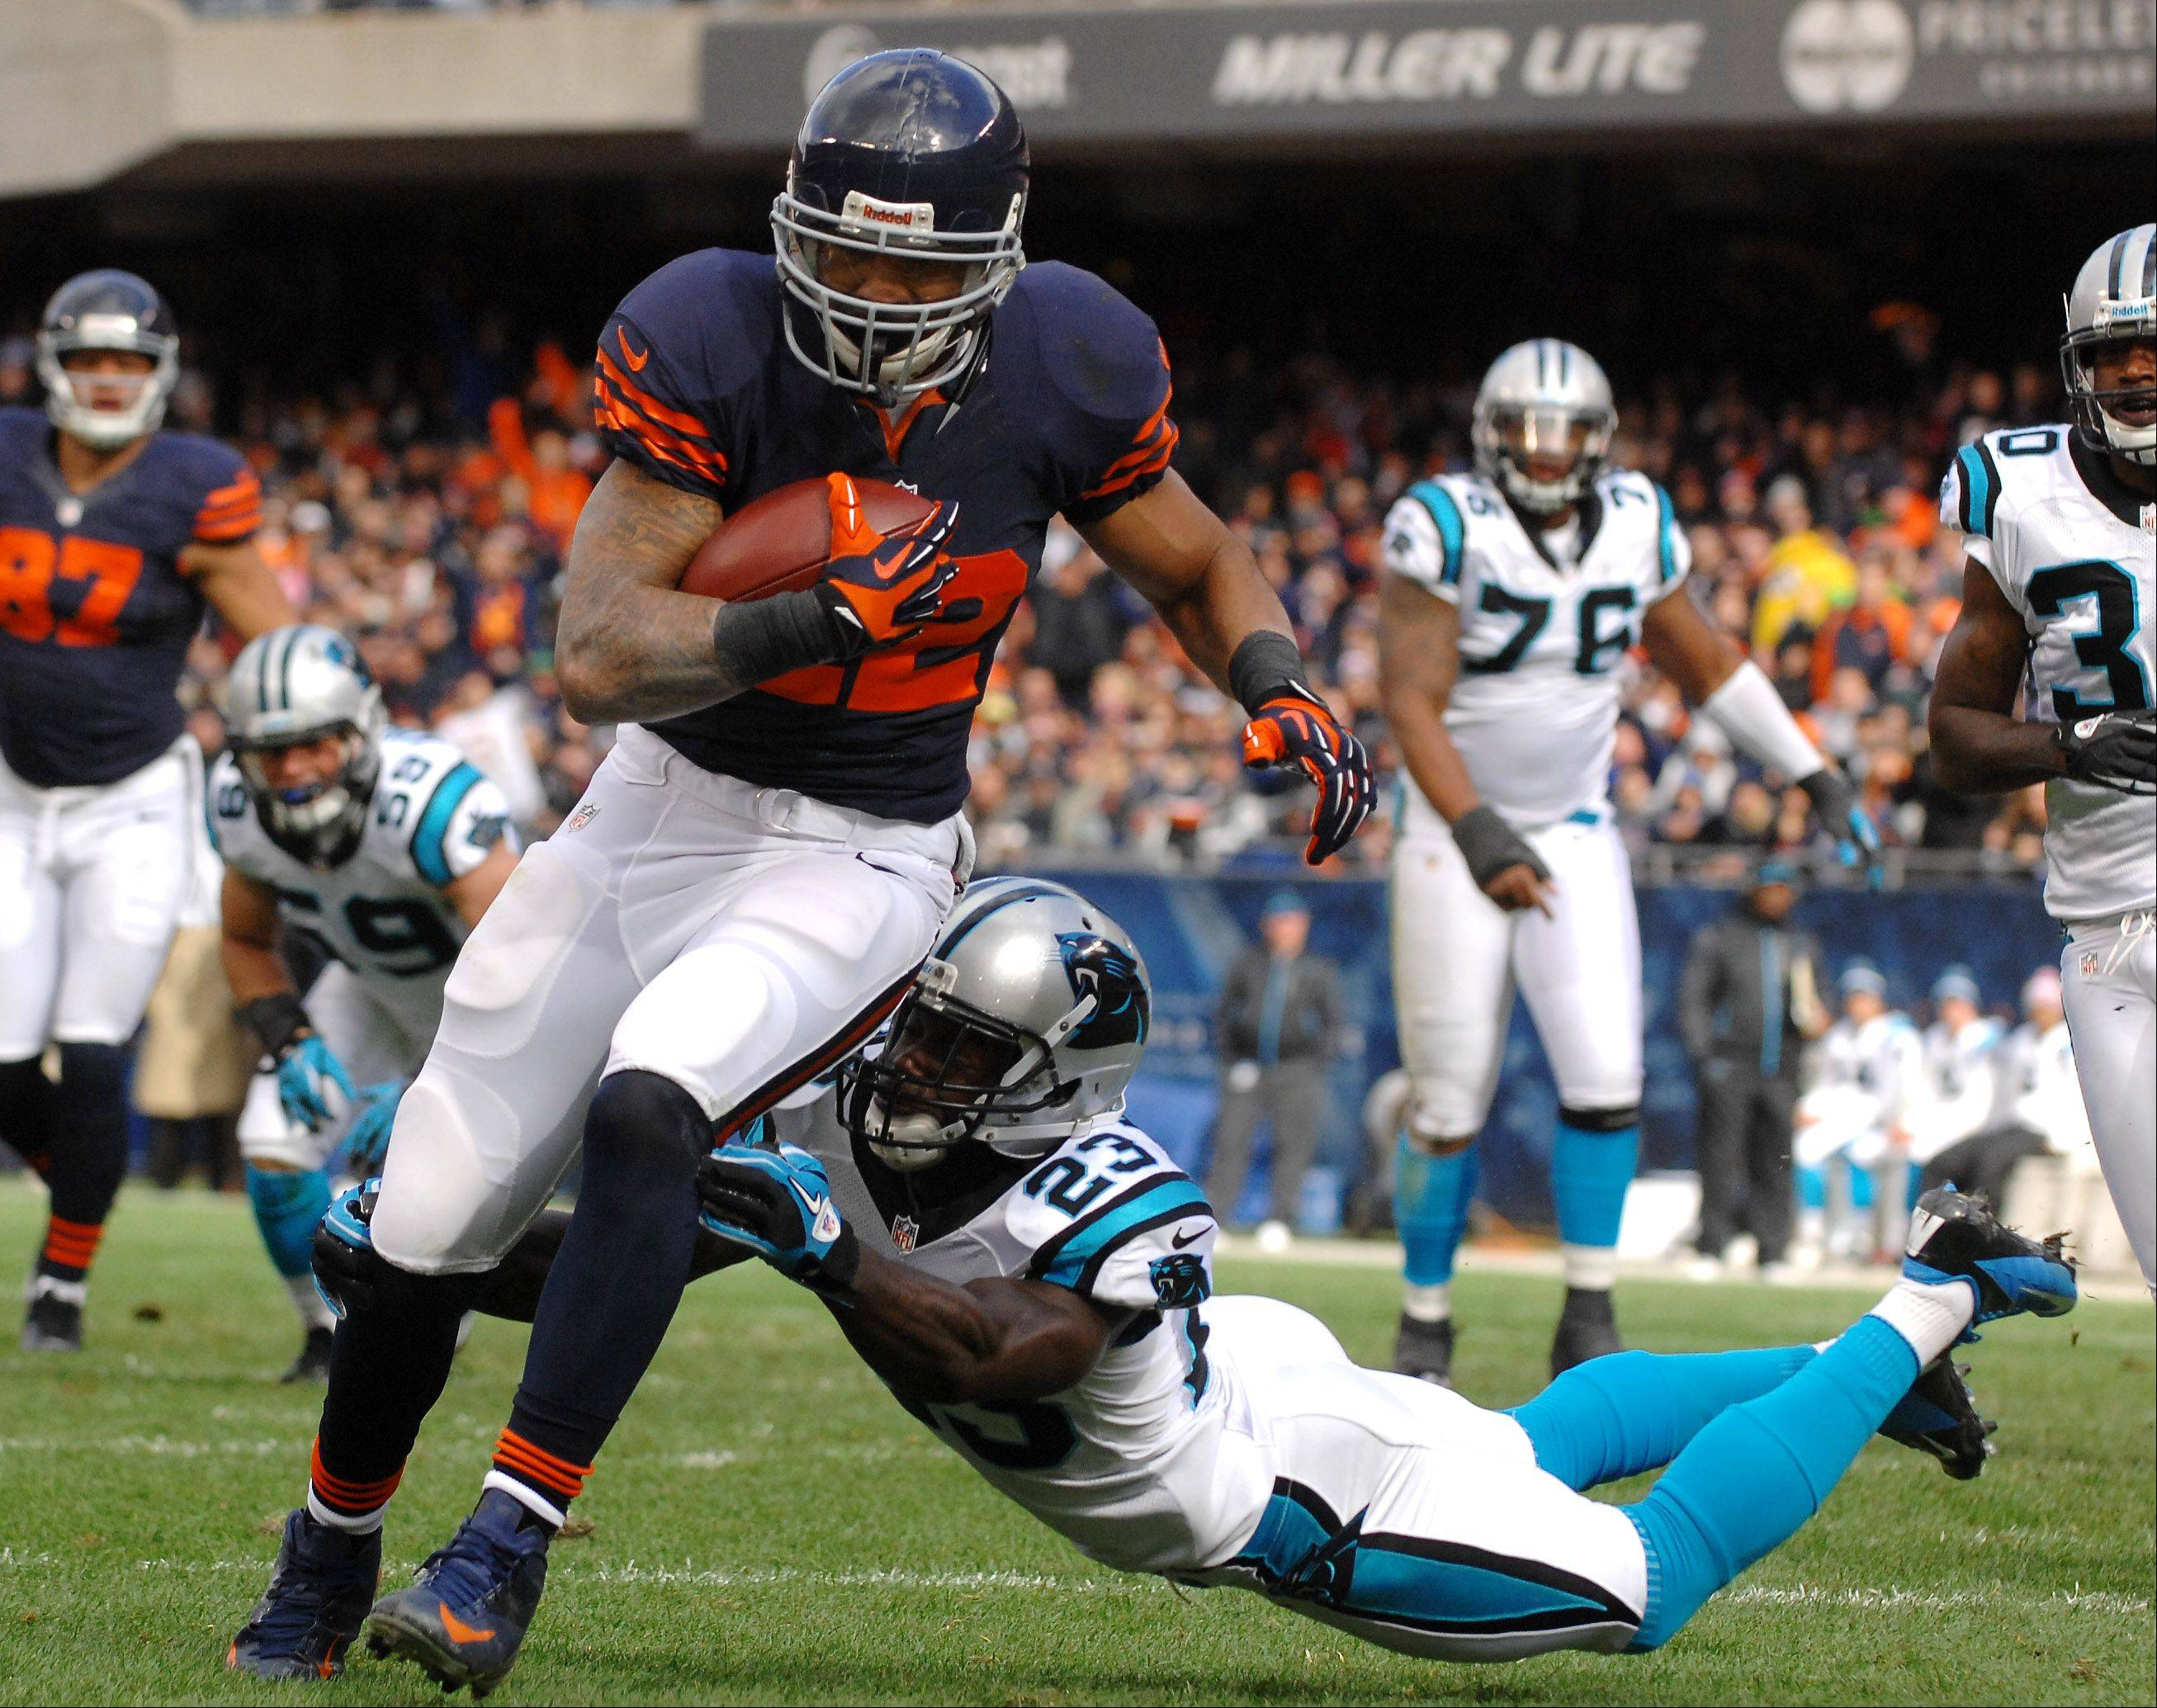 Chicago Bears running back Matt Forte (22) scores a first-quarter touchdown after eluding Carolina Panthers free safety Sherrod Martin (23) during Sunday's game at Soldier Field in Chicago.